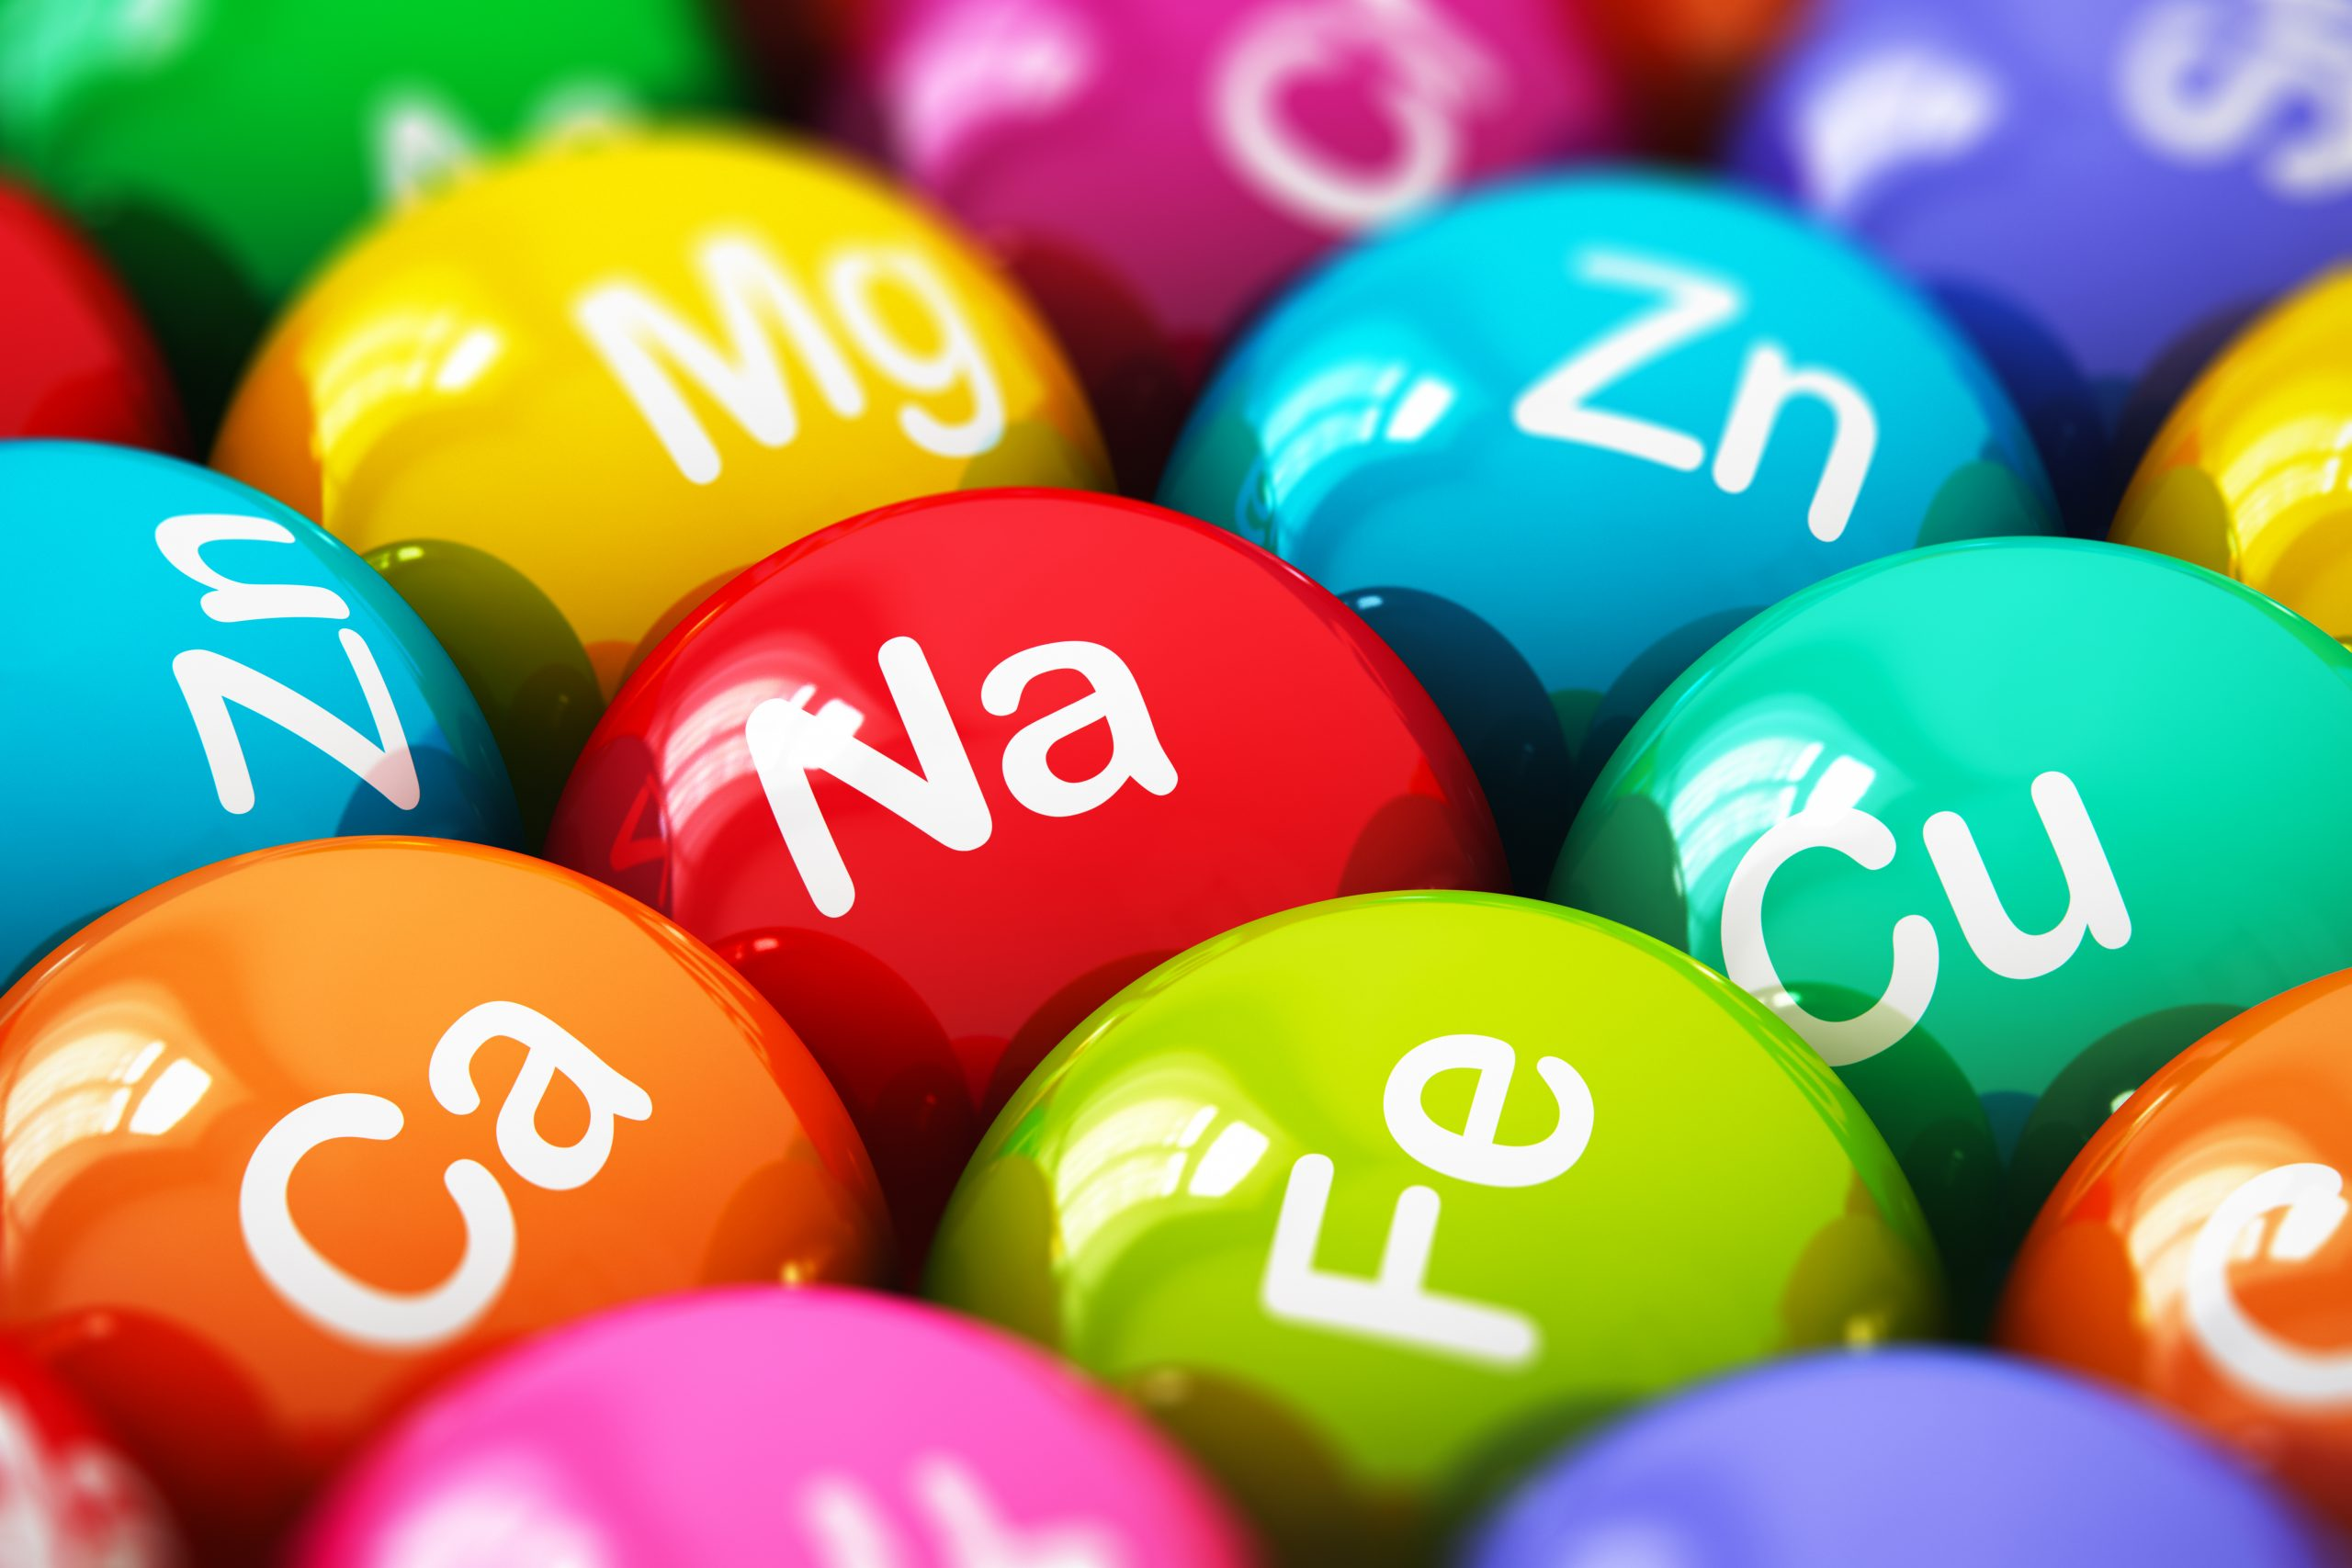 Macro view of colour balls with mineral elements written on them